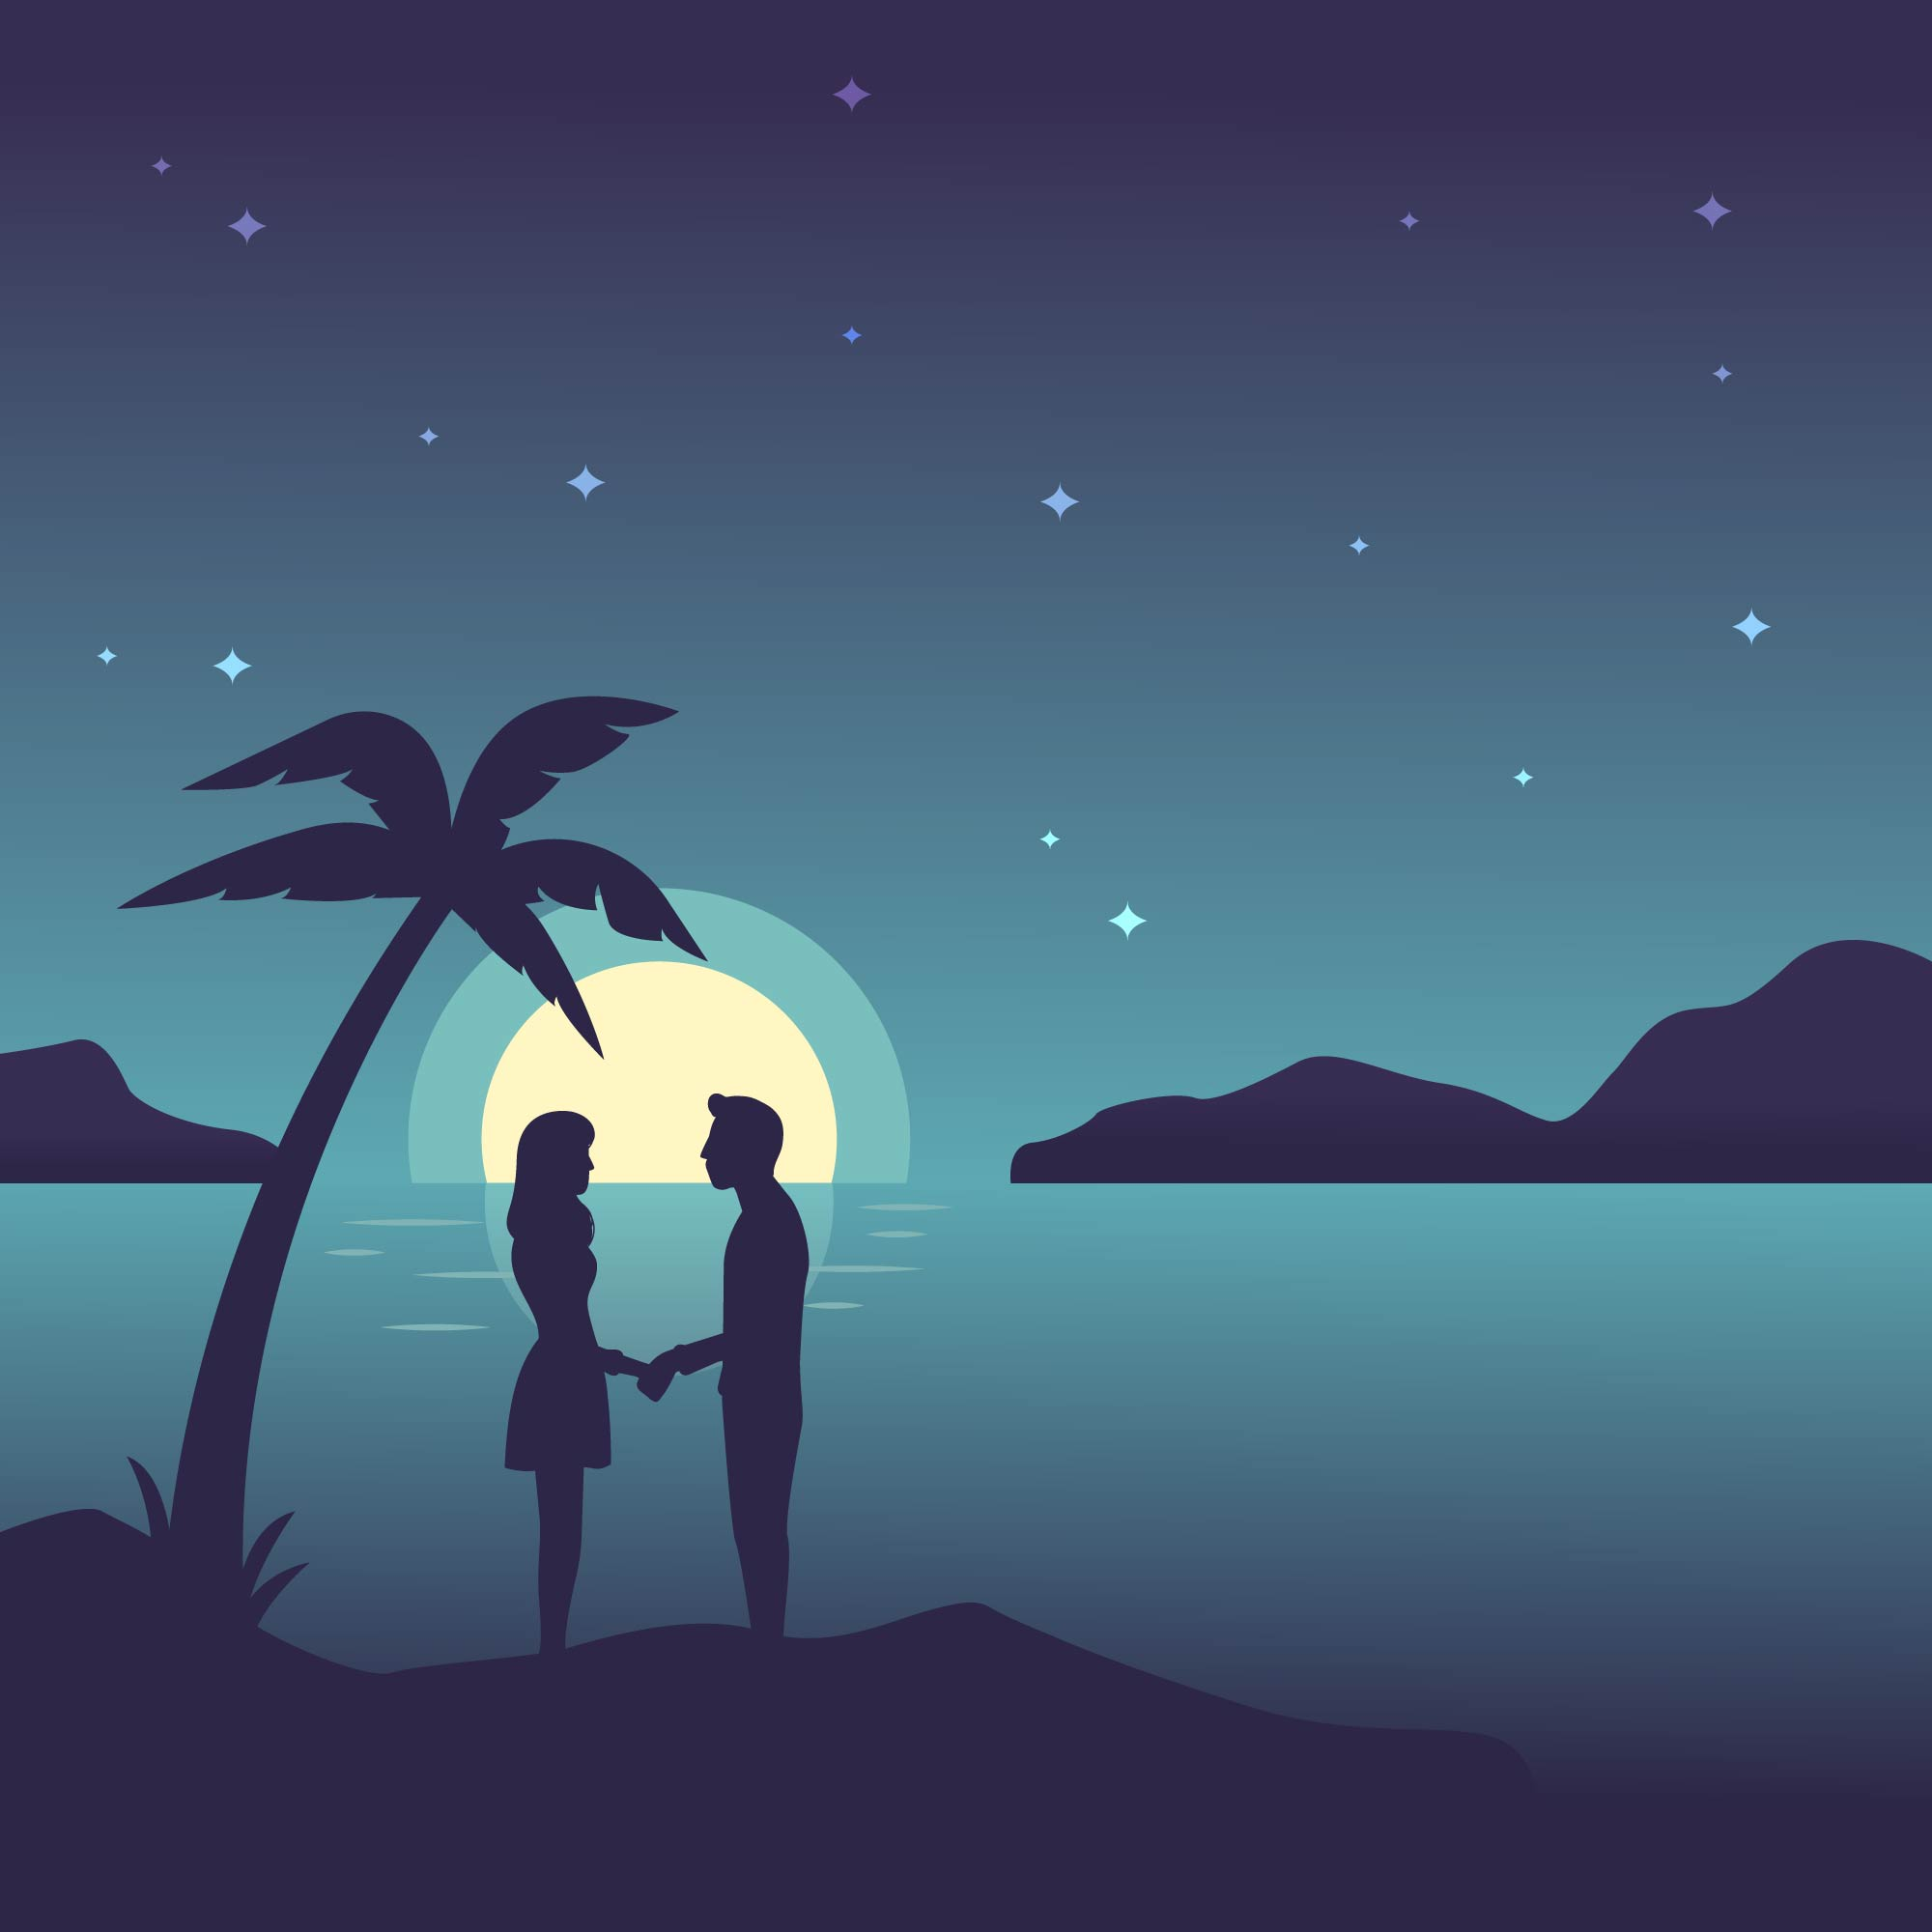 Night Time Beach Vector - Download Free Vectors, Clipart ...